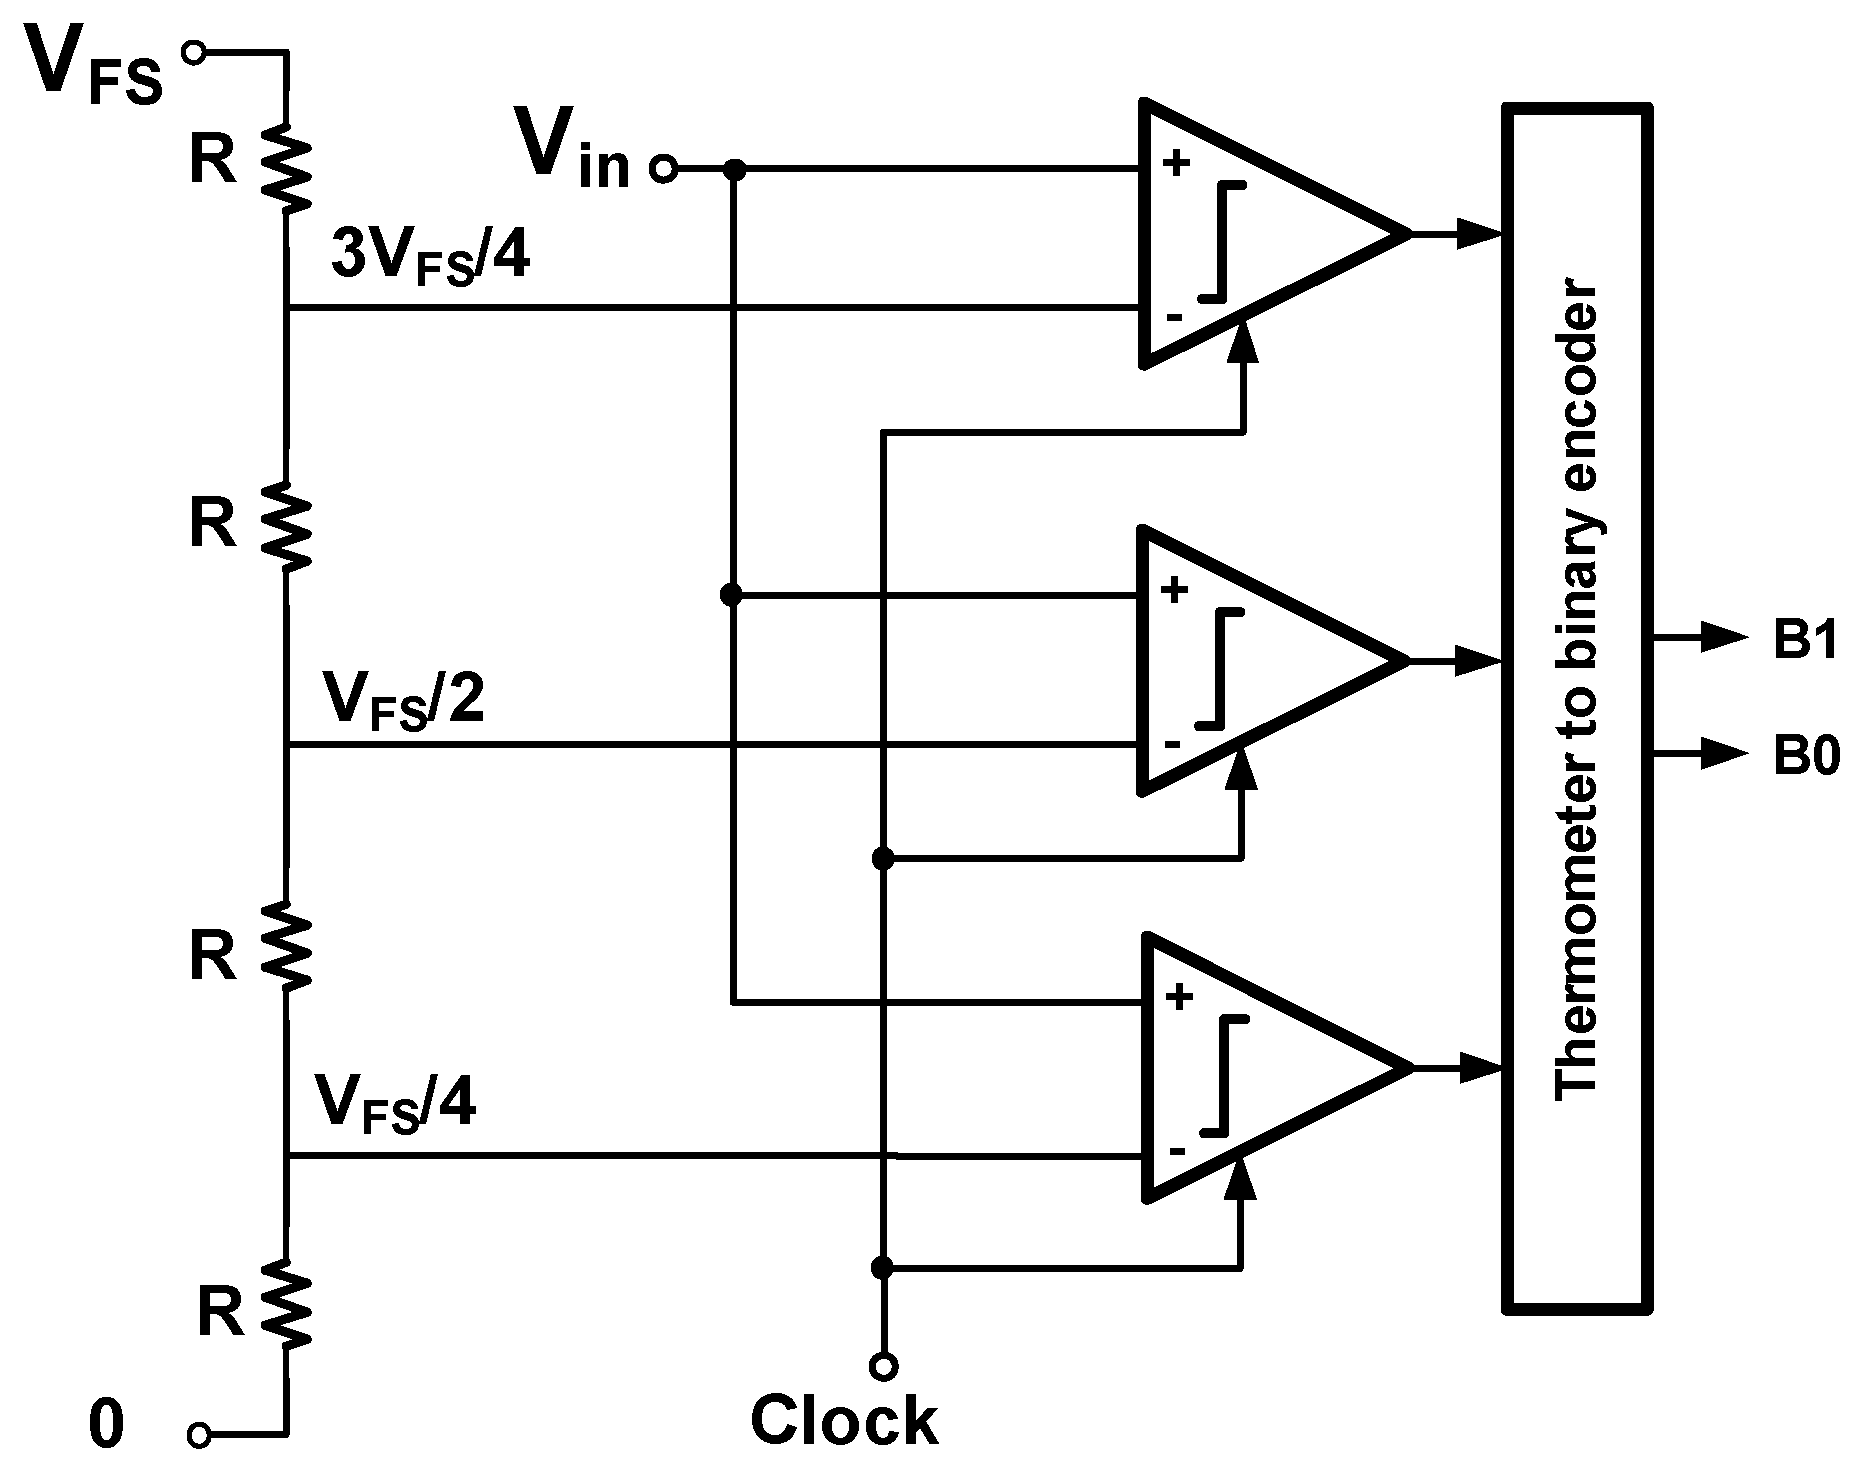 Jlpea Free Full Text Review Of Analog To Digital Conversion Comparator Circuits Examples Tutorial 08 00012 G001